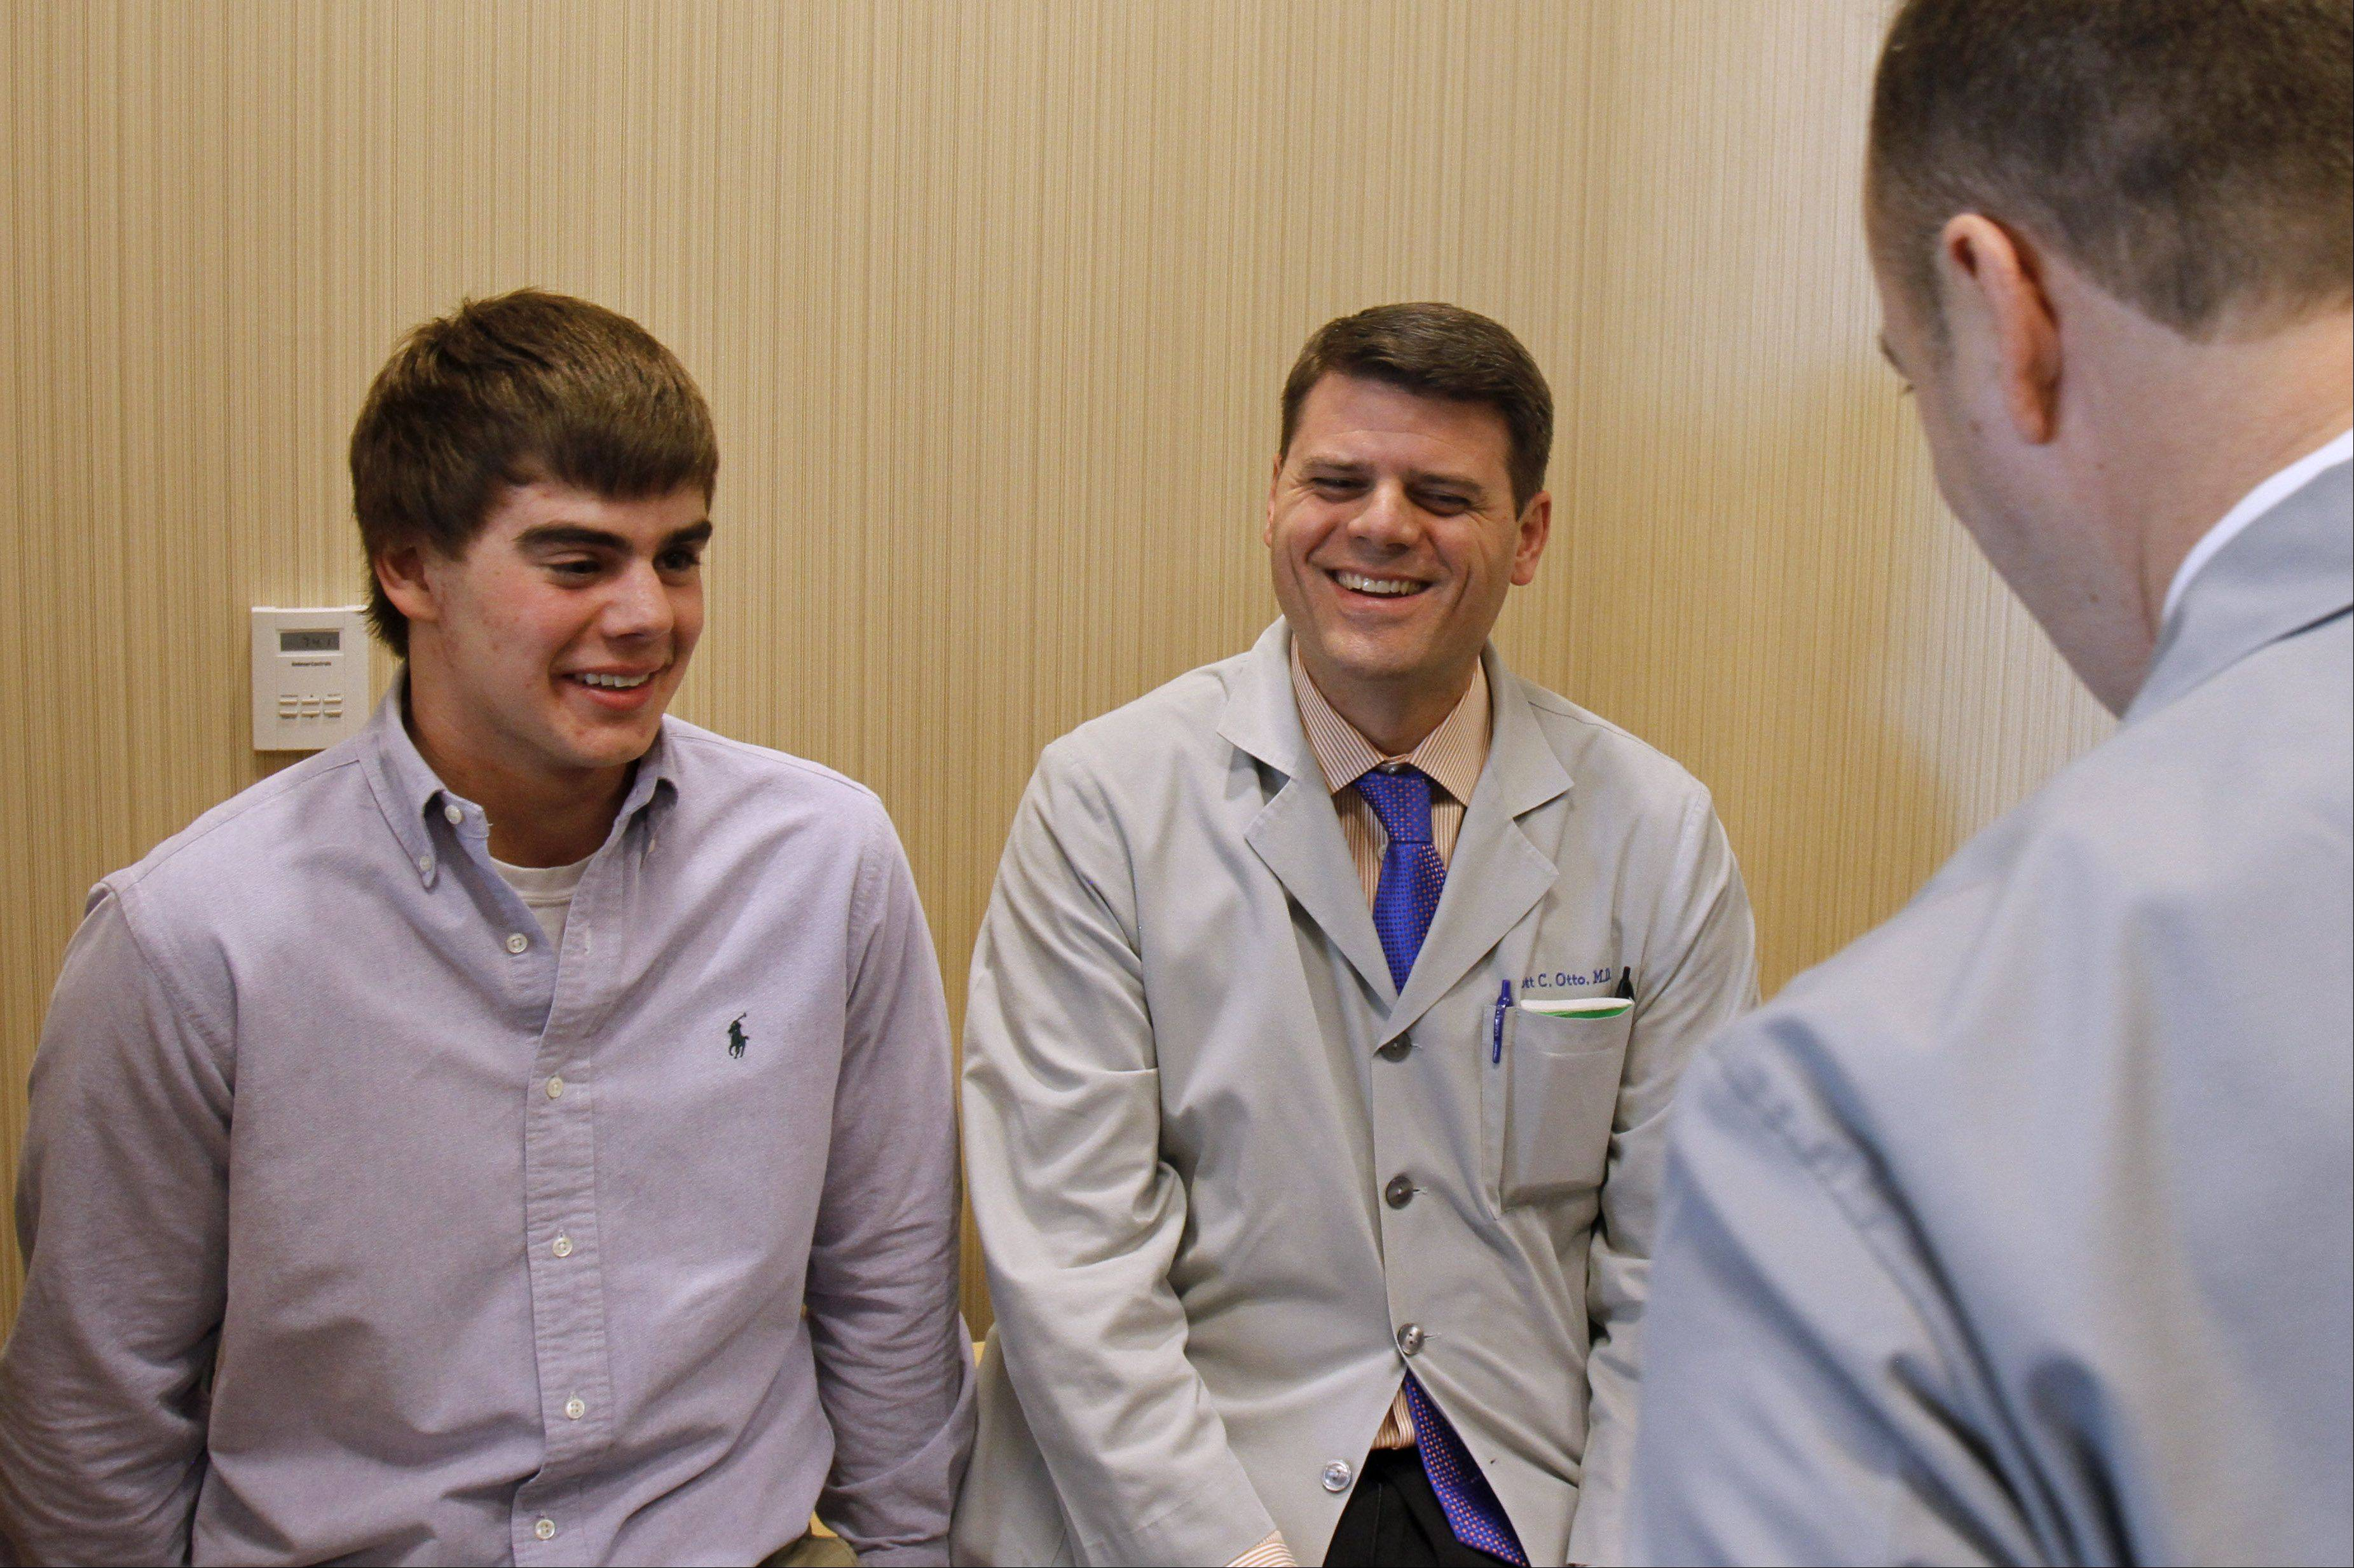 Forrest Ericksen of Lake Villa, left, laughs with surgeons Dr. Scott Otto, middle, and Dr. William Watson at Advocate Condell Medical Center in Libertyville Wednesday. The surgeons were on hand at Condell's level 1 trauma unit saved the 18-year-old's life after a snowmobile accident in 2010.